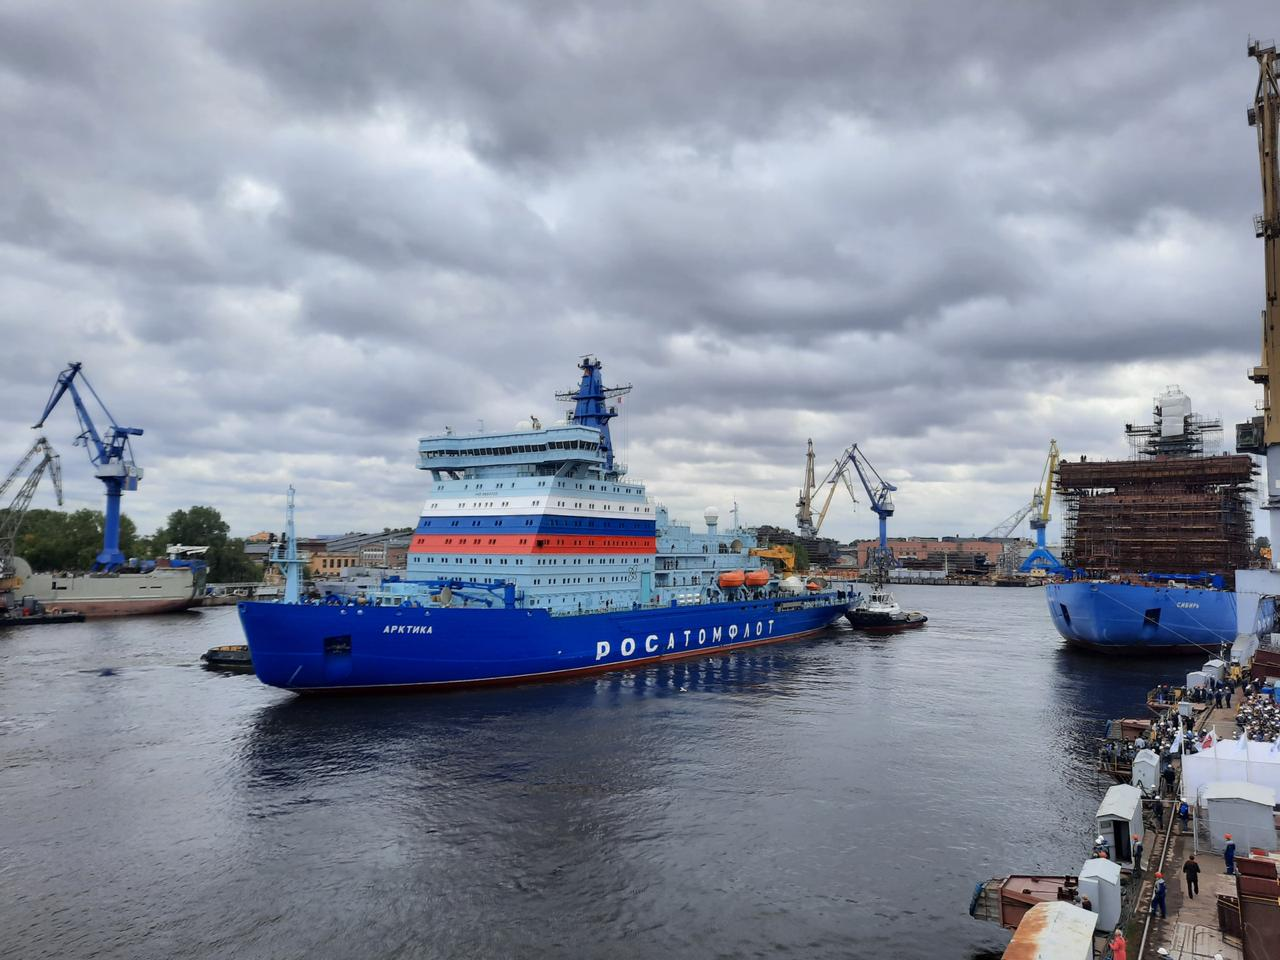 Nuclear icebreaker Arktika is heading to Murmansk